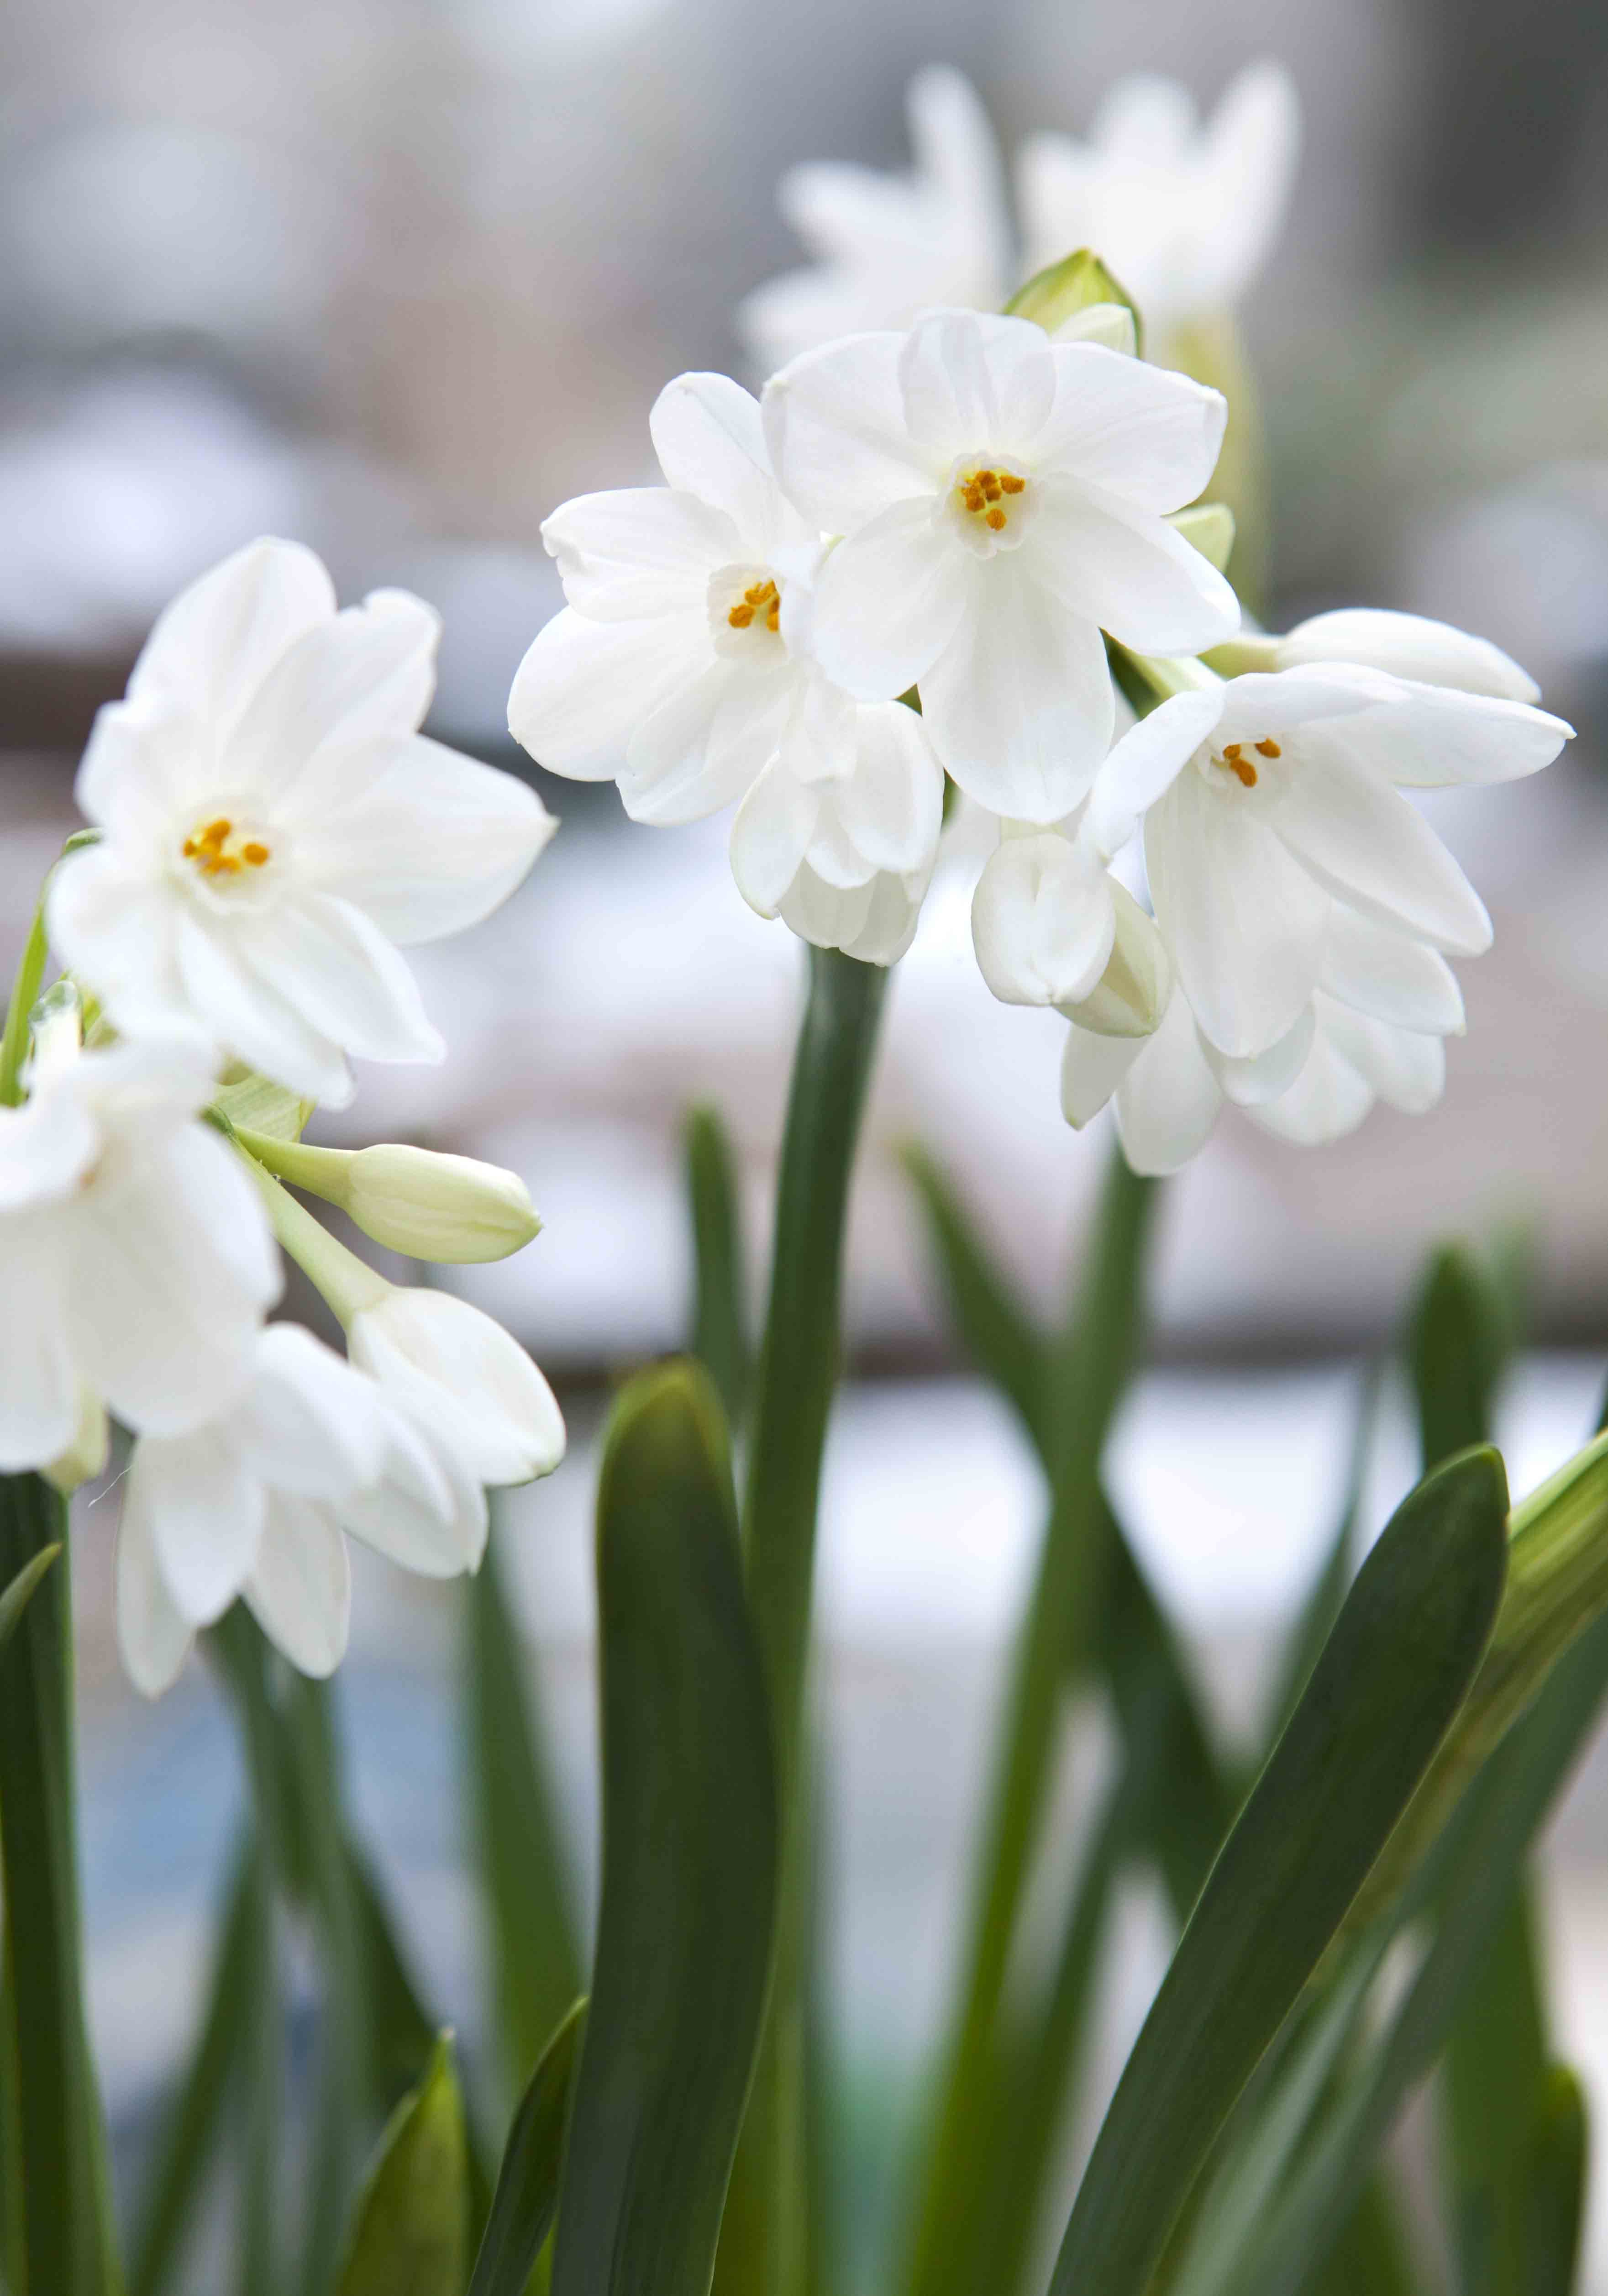 Narcissus Paperwhite Ziva An Early Blooming Daffodil Producing White Star Like Petals Surround A Small Trumpet Flo Narcissus Flower Narcissus Flower Pots